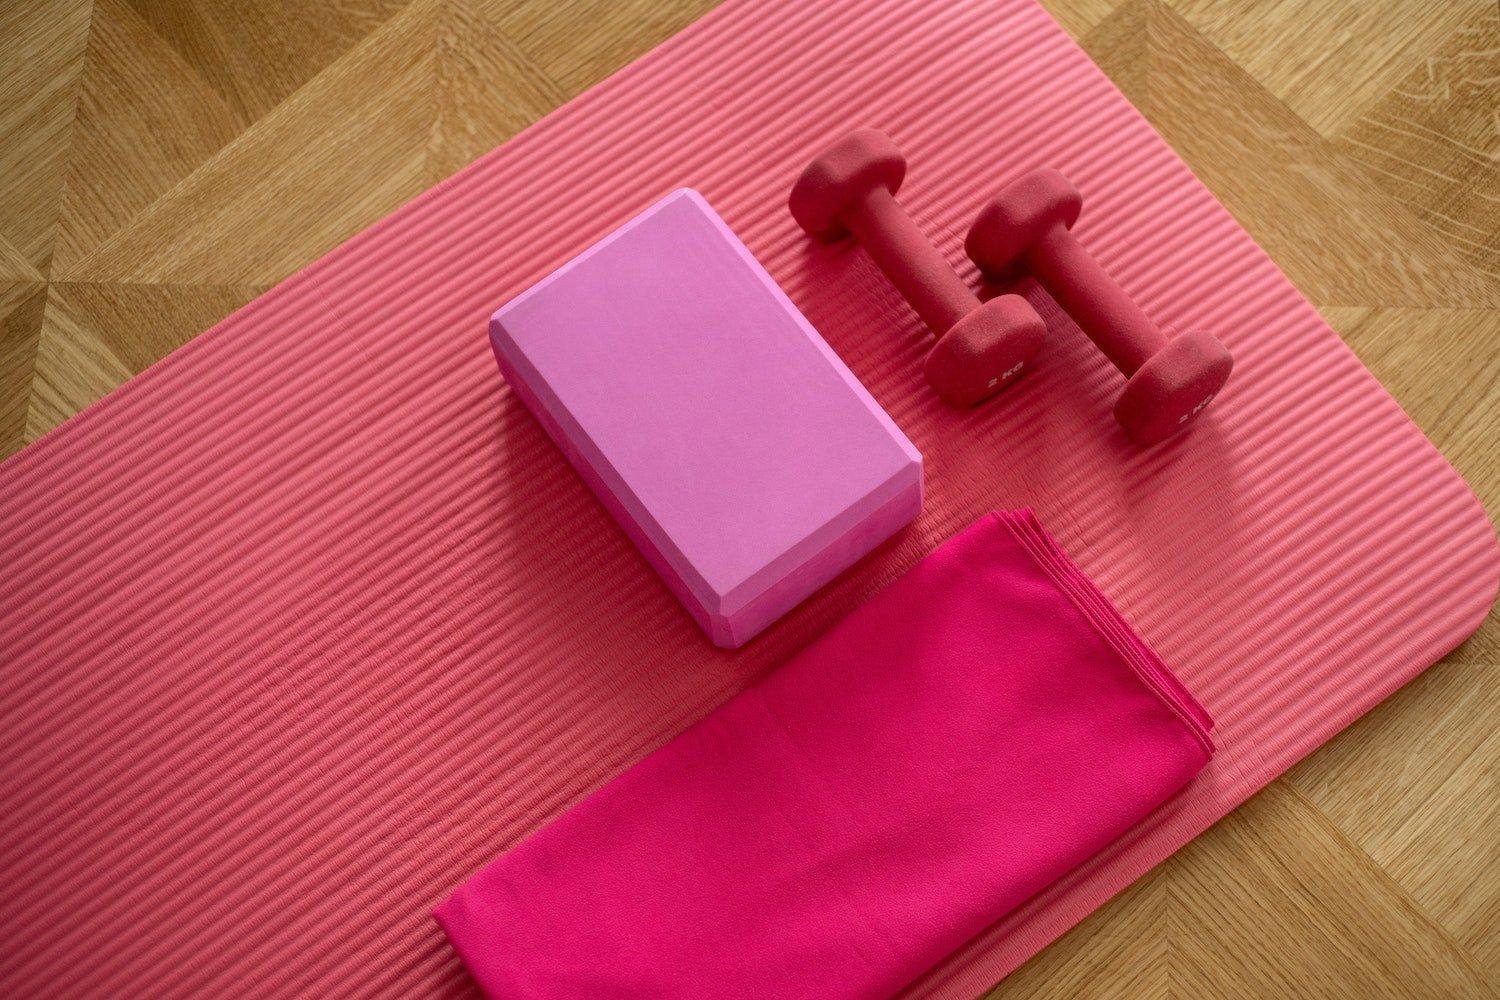 Exercises To Lose Weight At Home